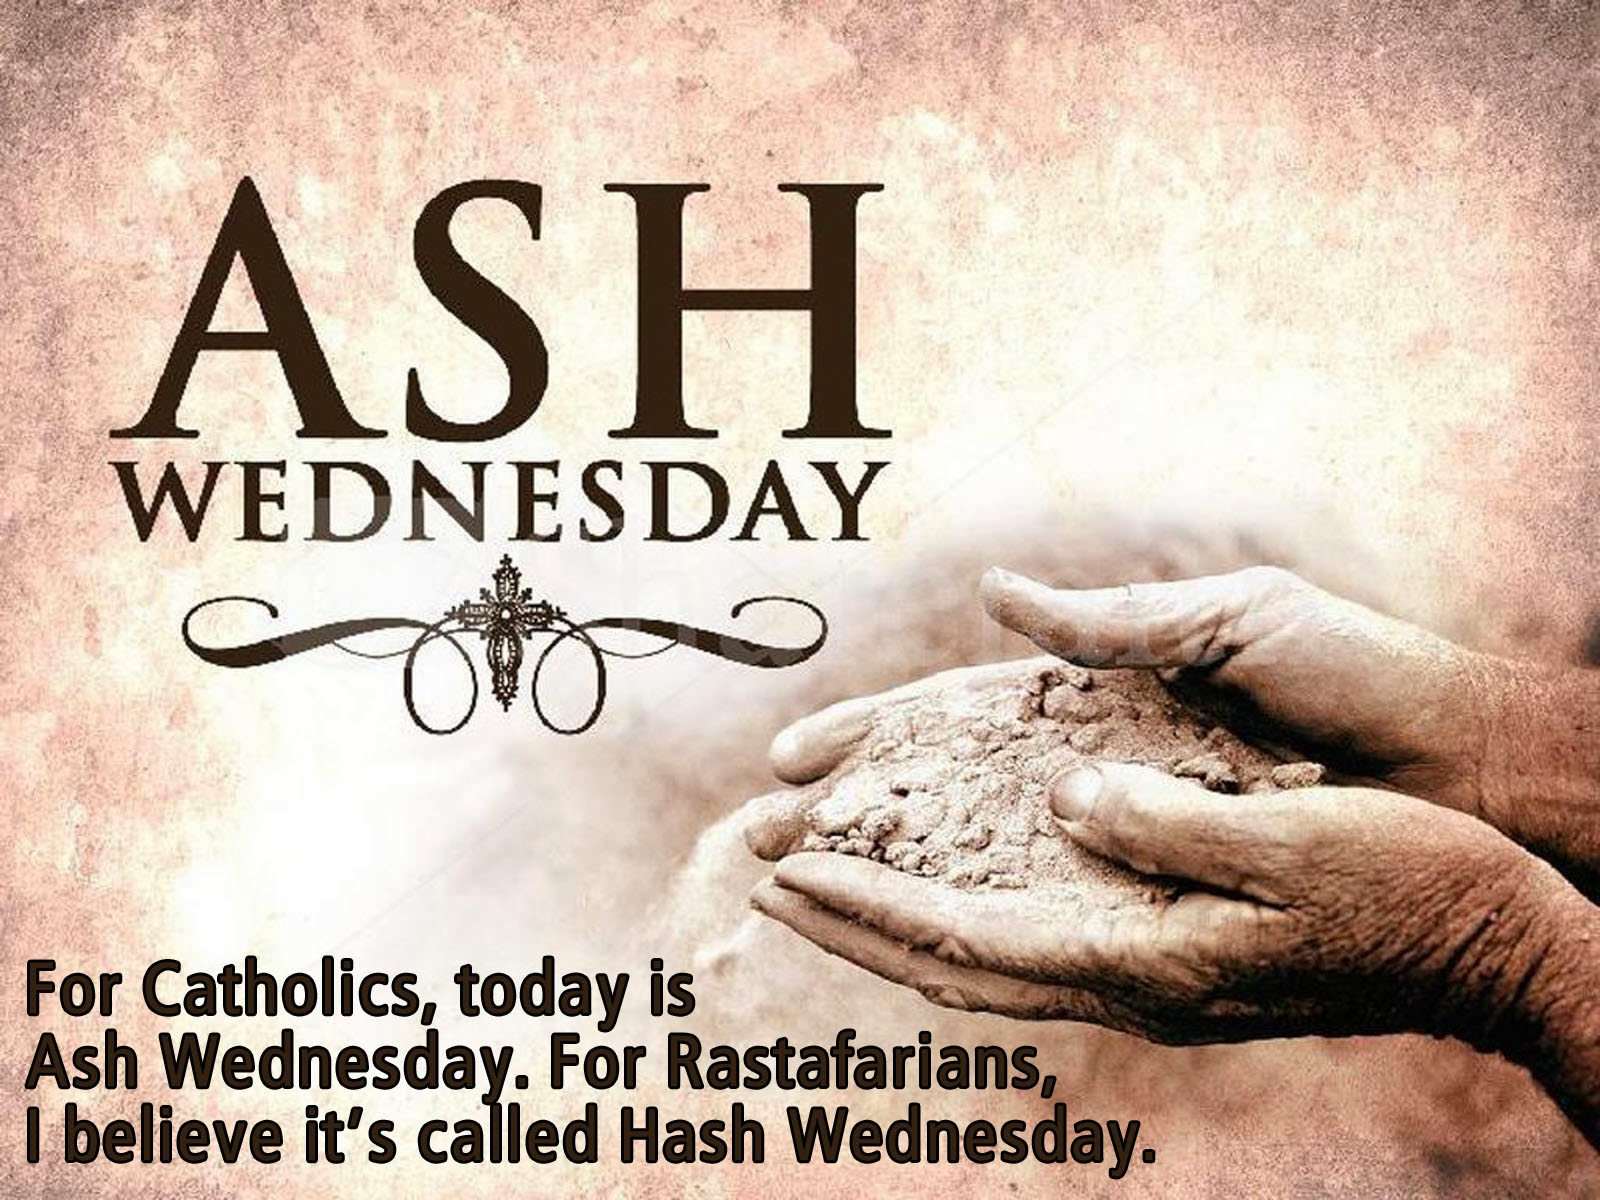 Quotes And Sayings: Ash Wednesday Quotes And Sayings. QuotesGram